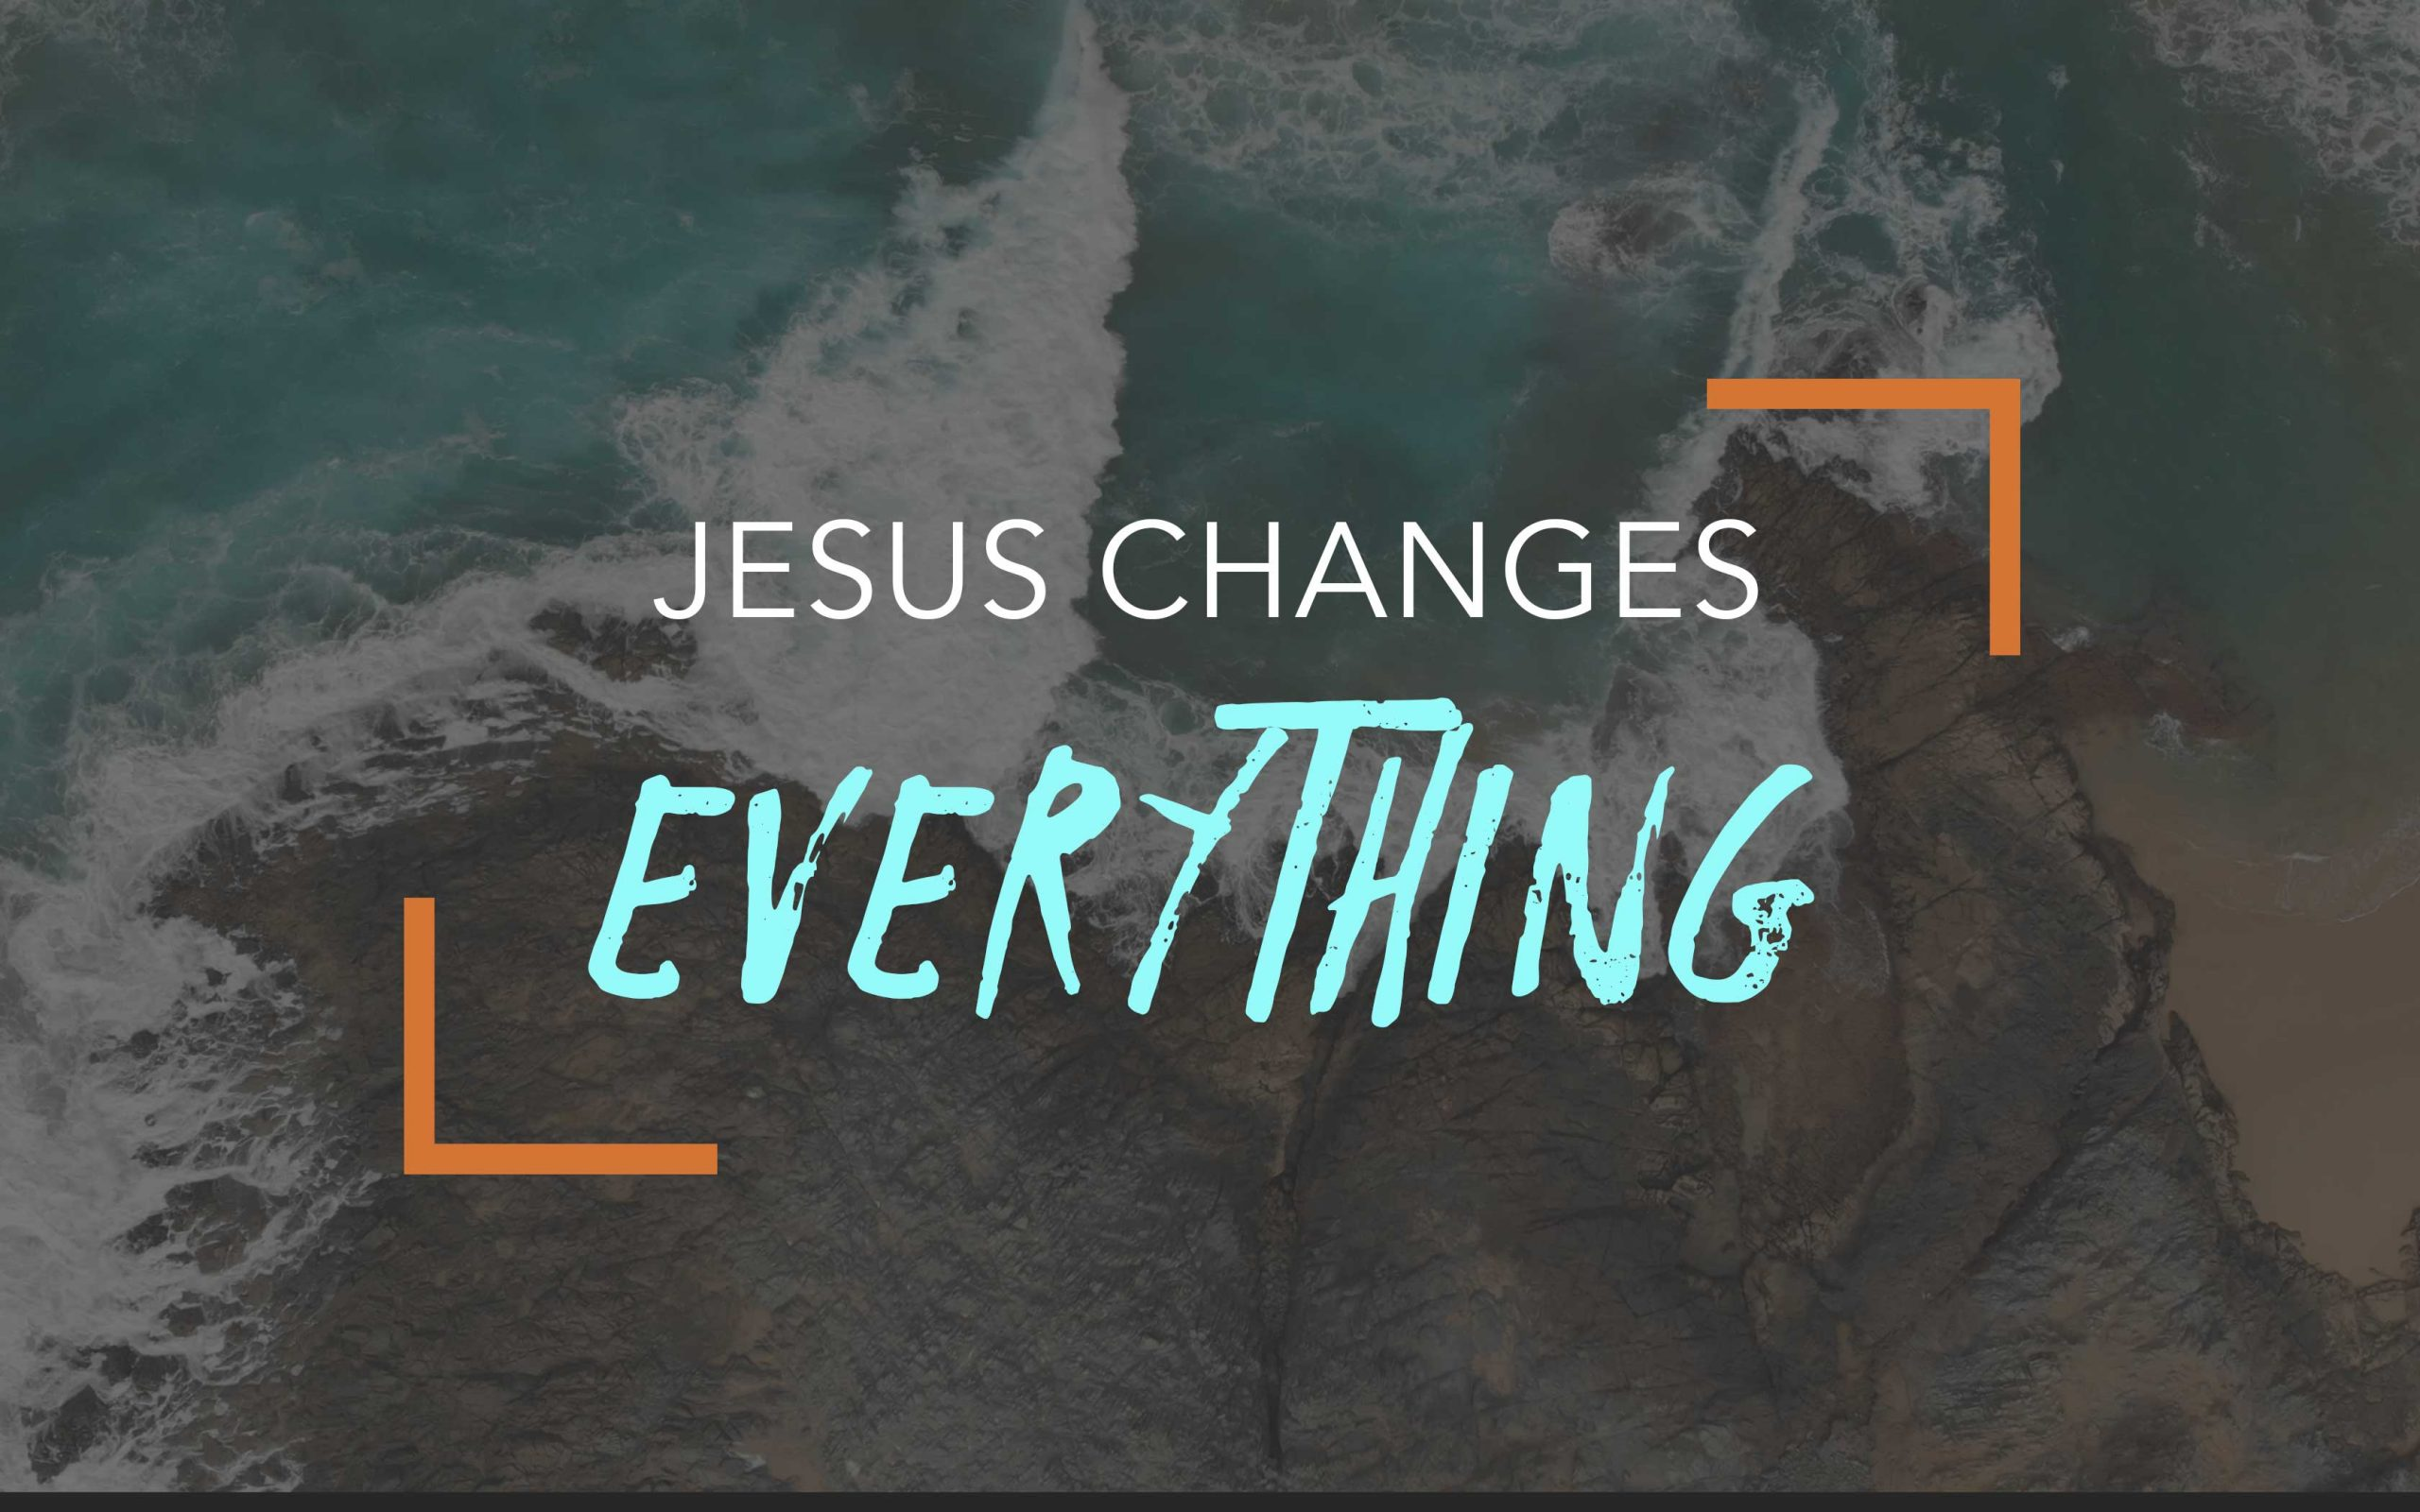 Jesus Changes the New Normal (1 Peter 1:13-21)